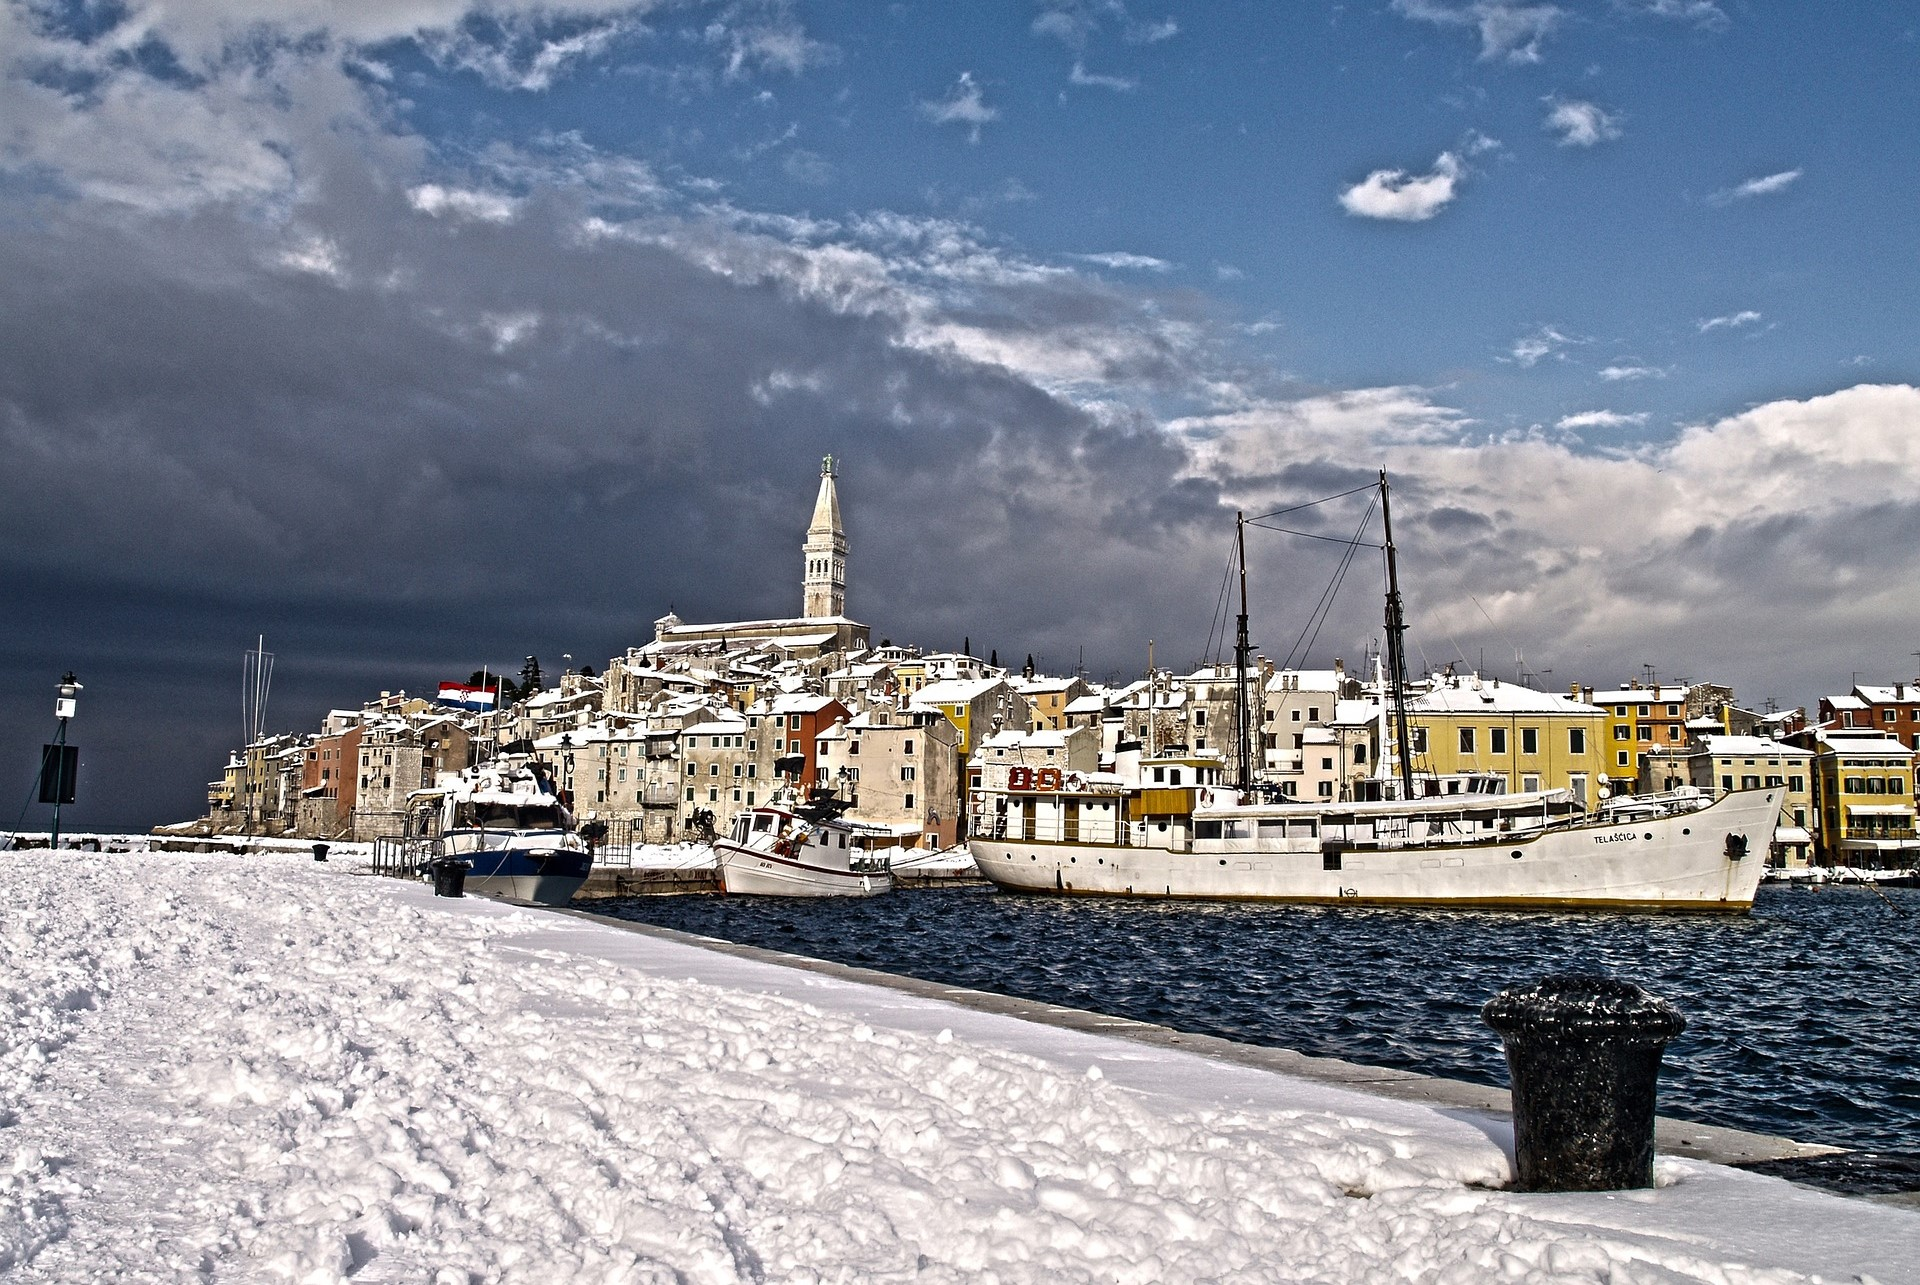 Snow on the Croatian coast